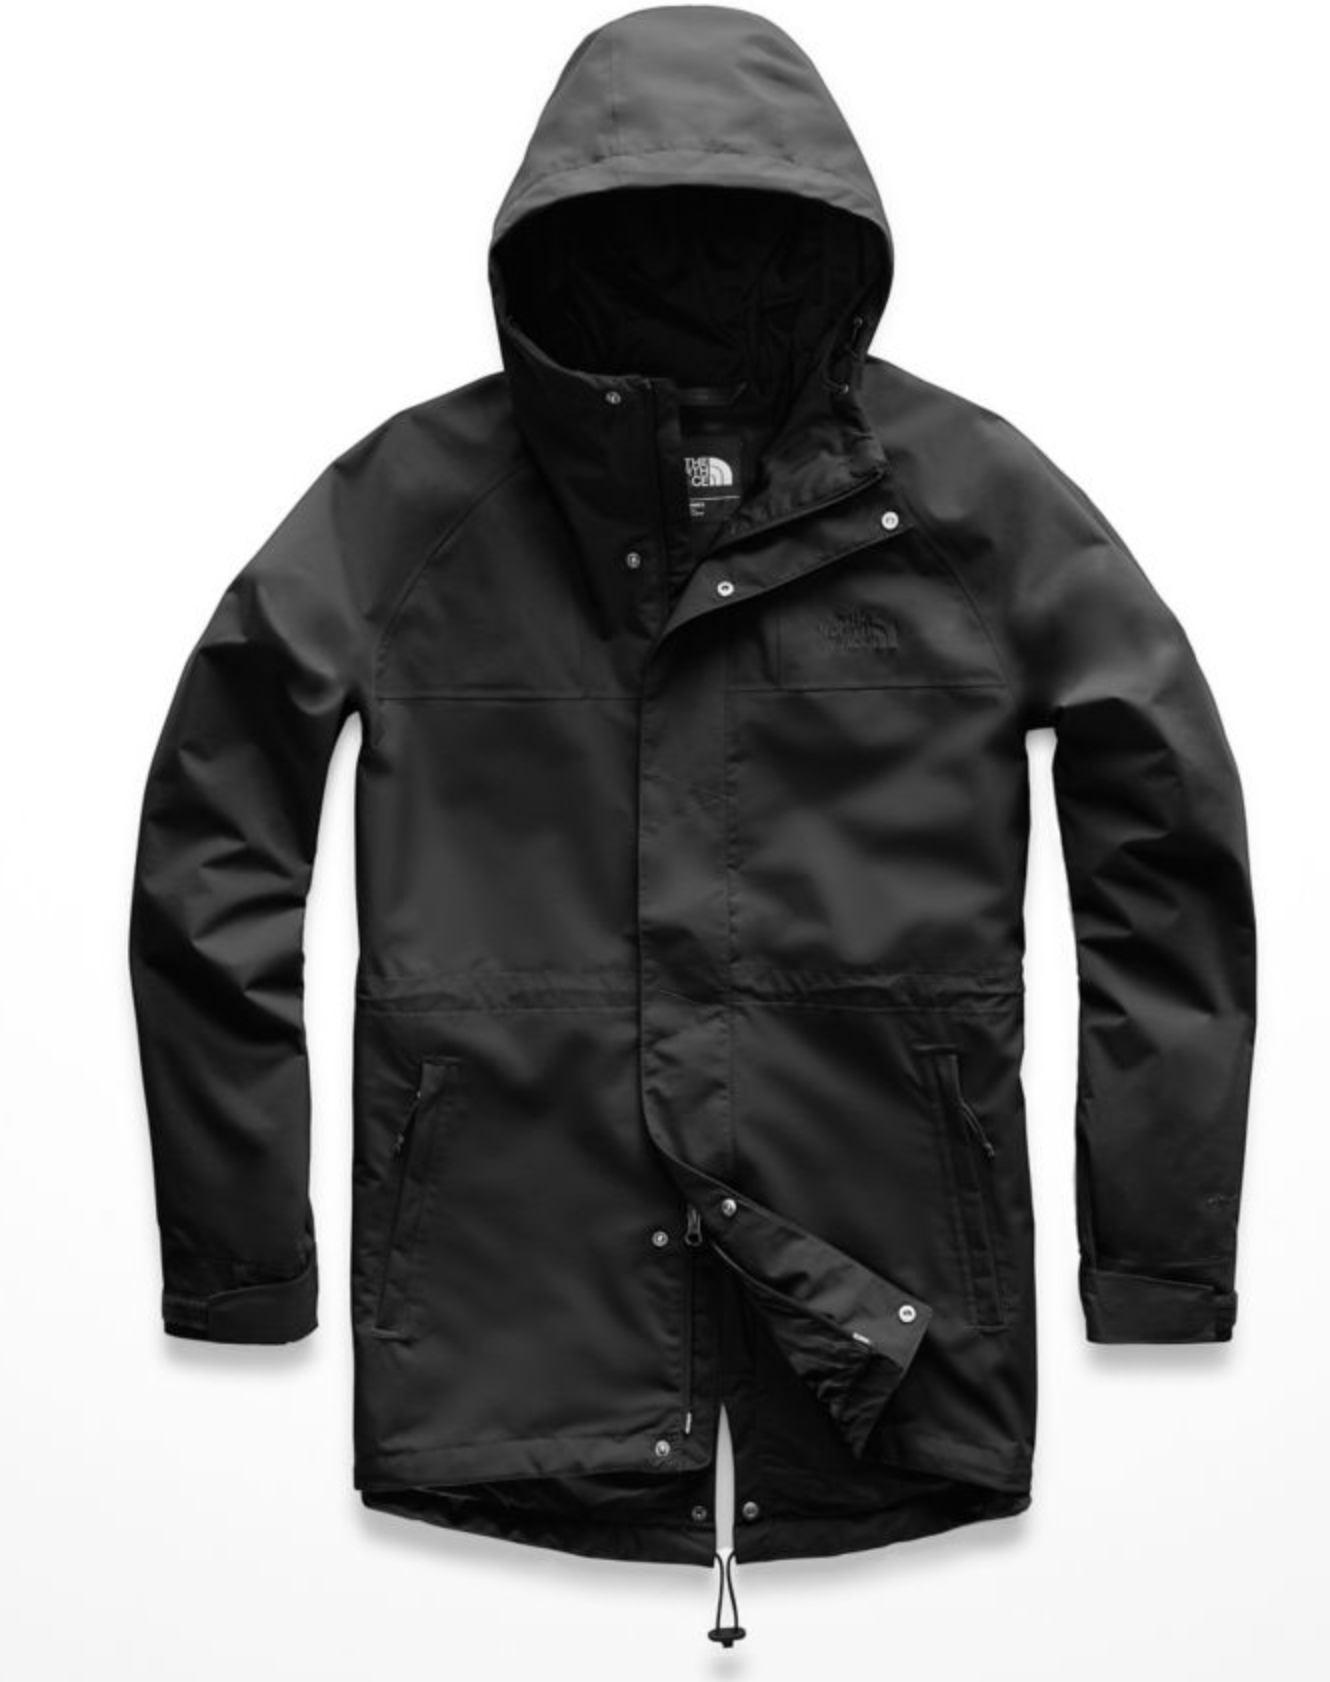 JACKET - This North Face rain jacket (also shown in the top picture) is the perfect layering jacket. Great for every day wear for $179.